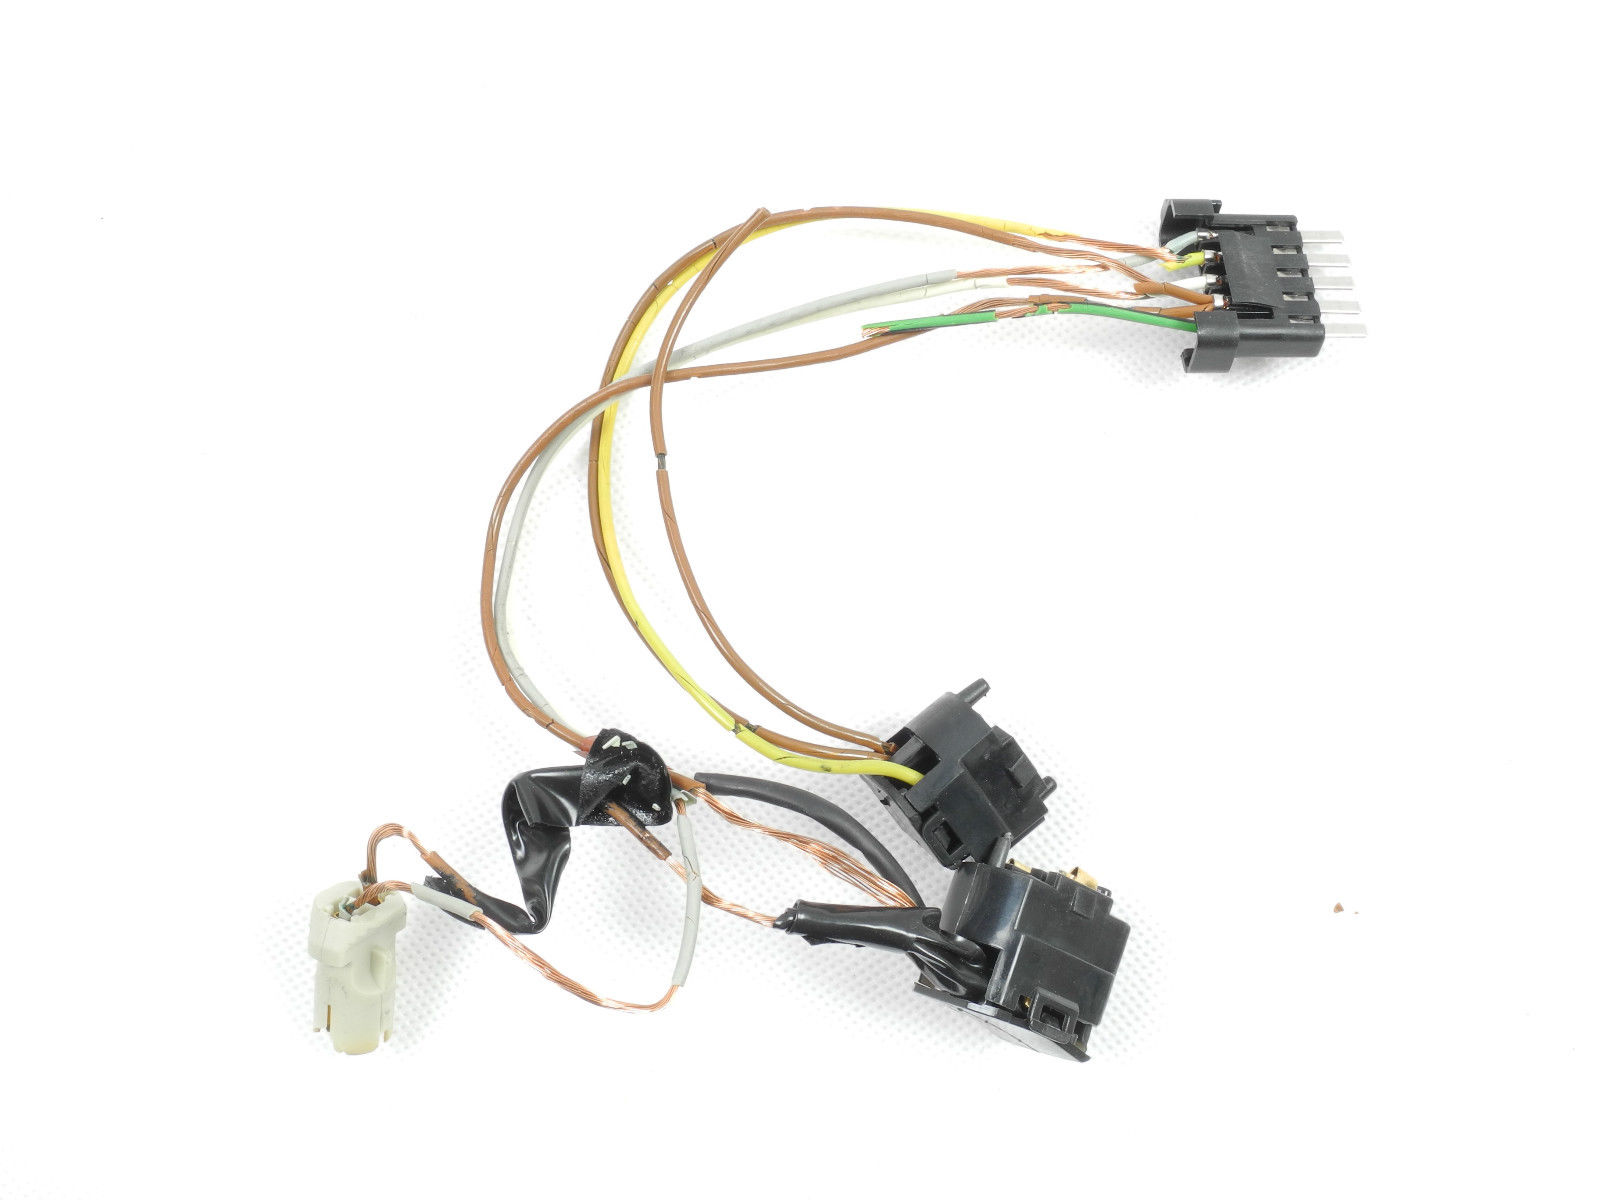 seab abdc109a_448__4 mercedes c350 c280 c32amg c240 c230 headlight wire harness  at creativeand.co